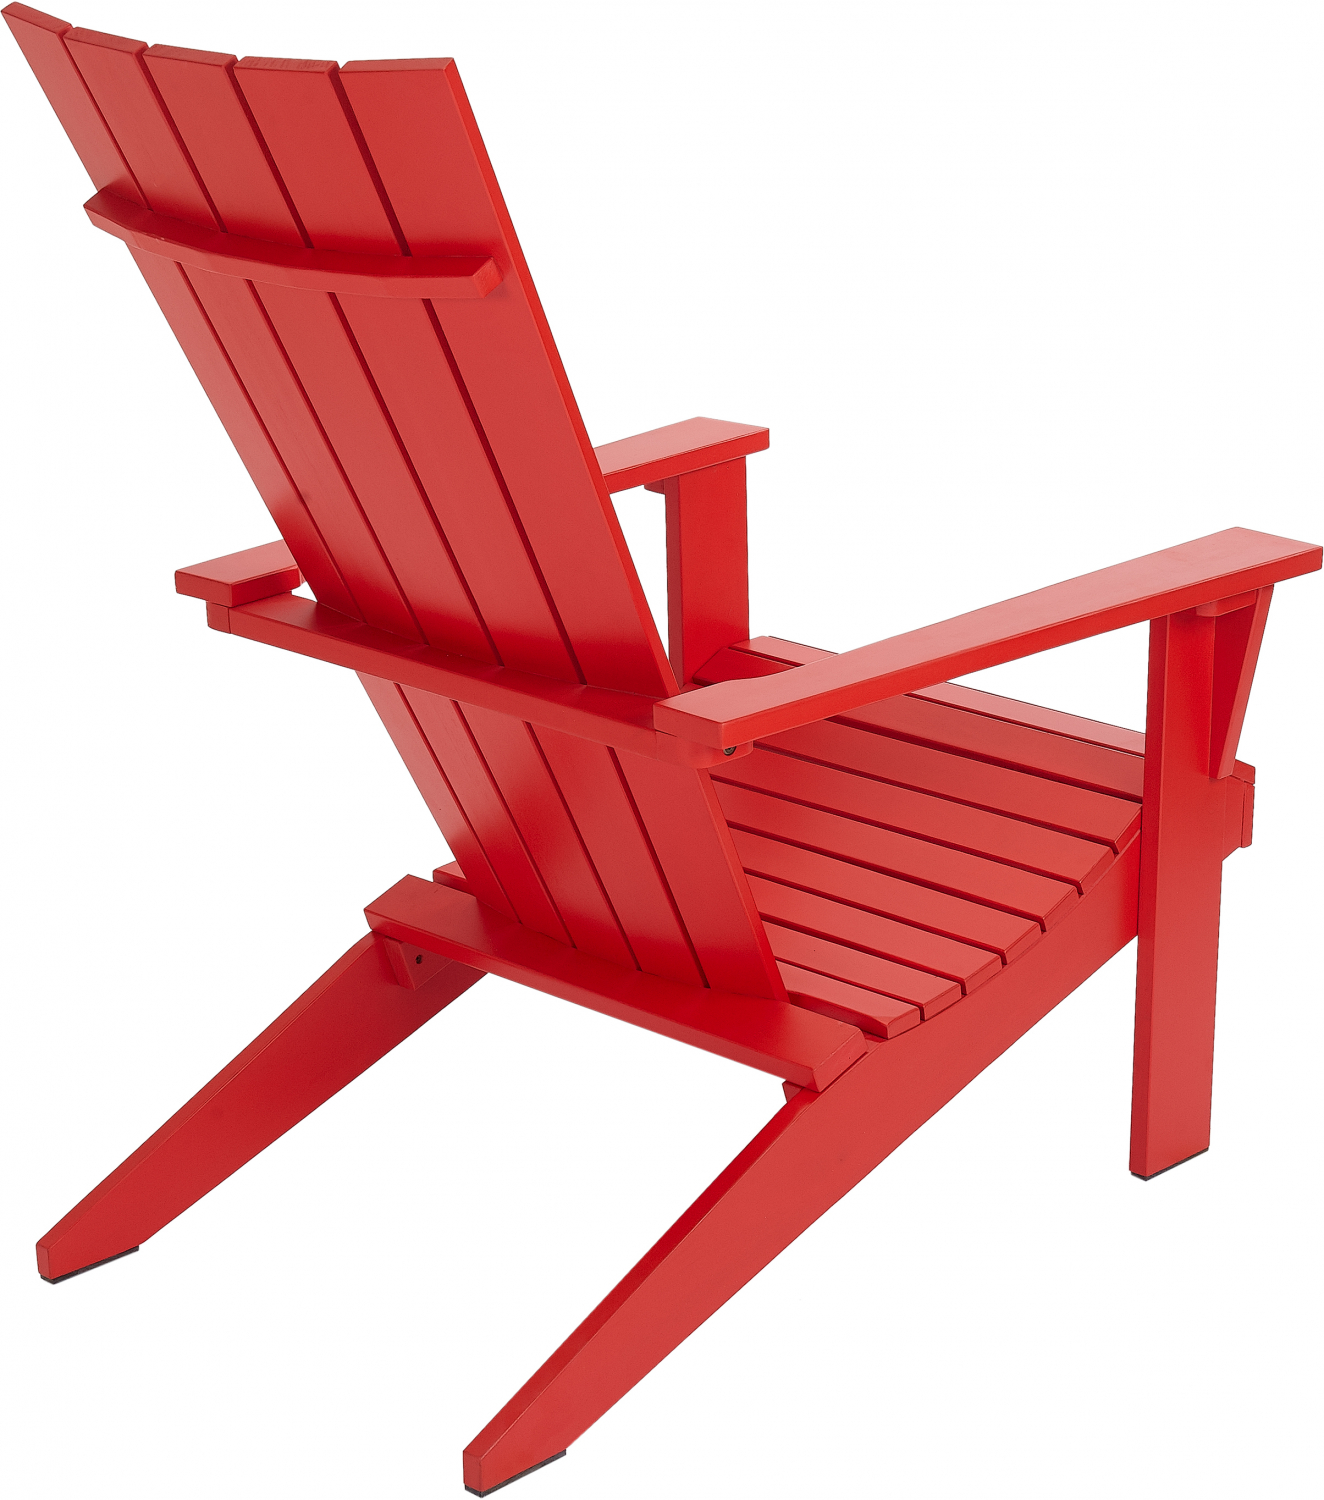 Pleasing Details About Outdoor Patio Wooden Adirondack Chair Lounge Deck Porch Blue Red White Gray New Pdpeps Interior Chair Design Pdpepsorg